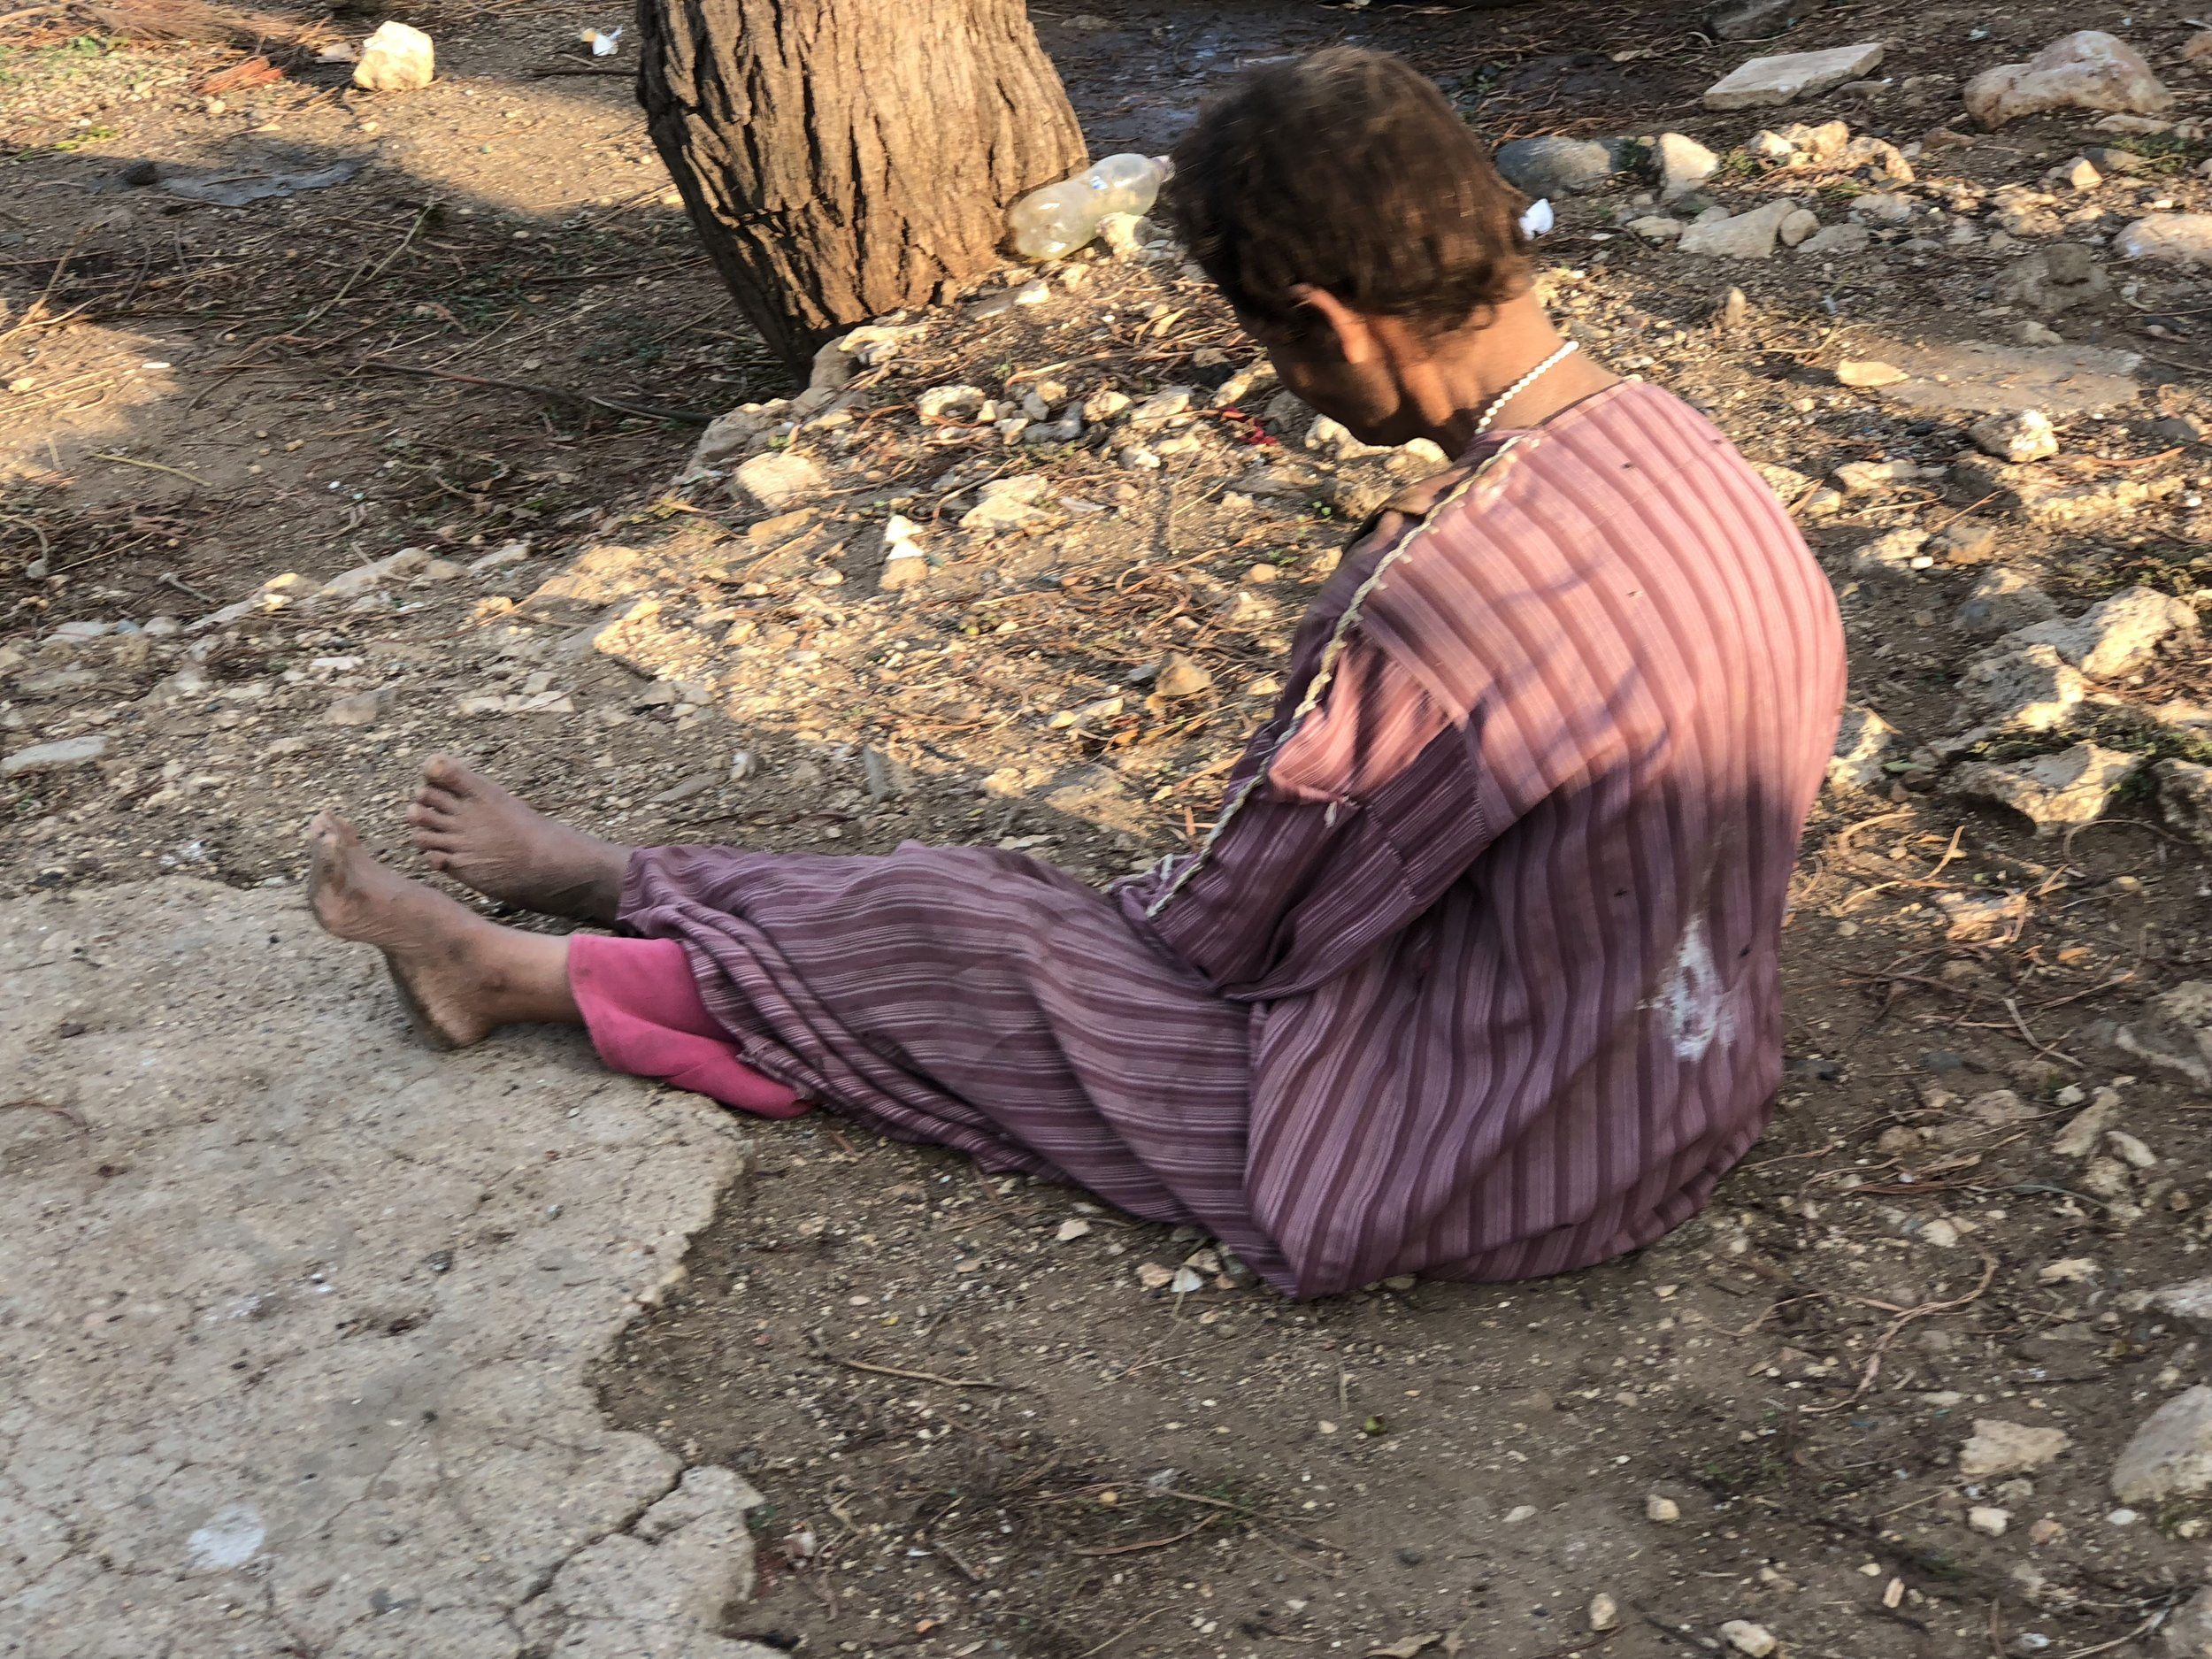 November 2017, Syria. A displaced woman, visited by Samara, with learning difficulties. She was barefoot and in tattered clothes, living in a tent-like structure in an informal settlement, having fled fighting in Aleppo. We provided boots, clothes and a dignity bag for her.